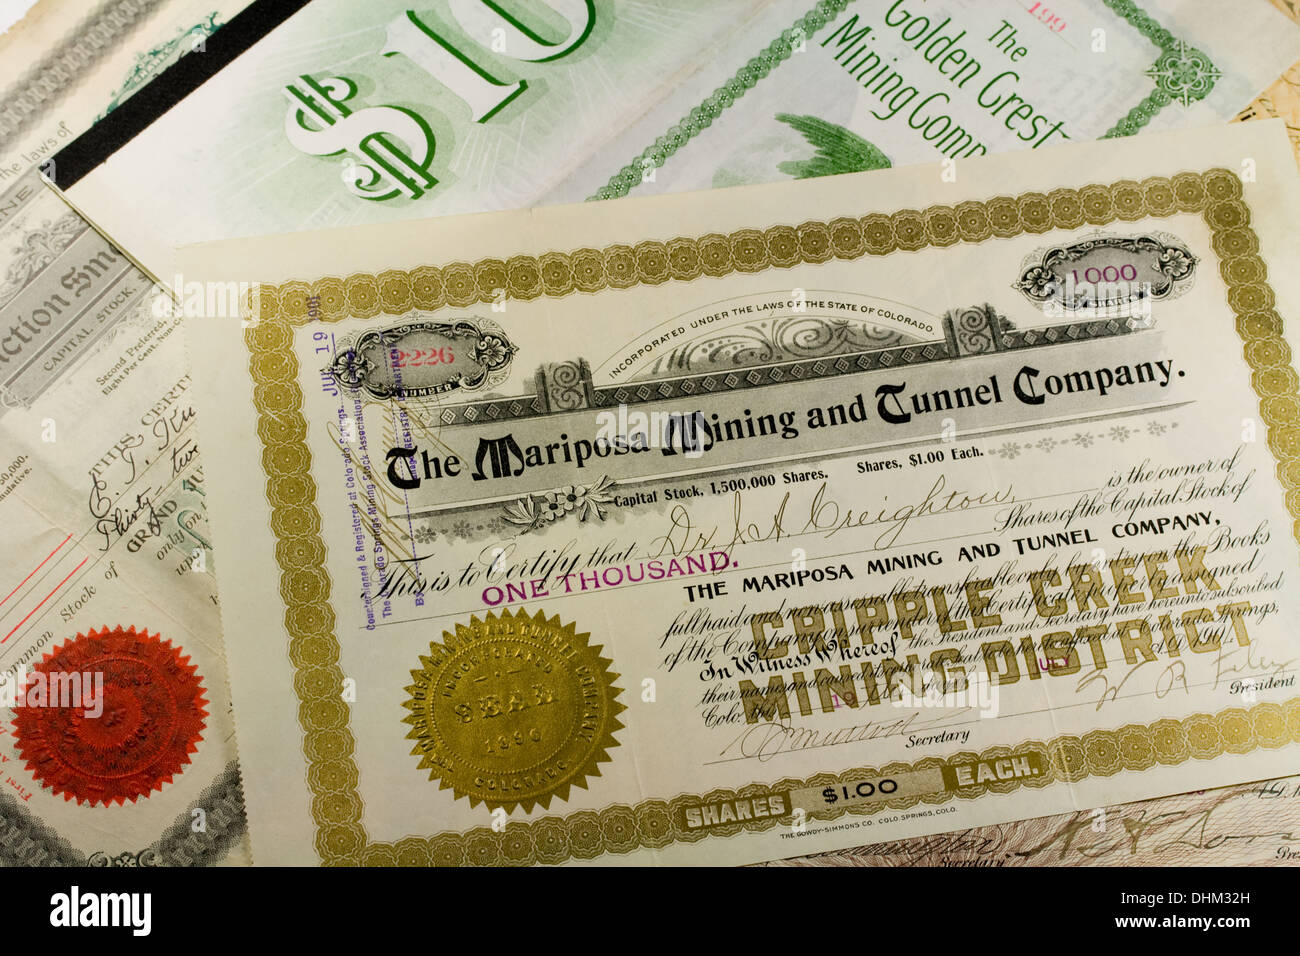 Antique Western Mining Company Stock Certificates and Bonds - USA - Stock Image